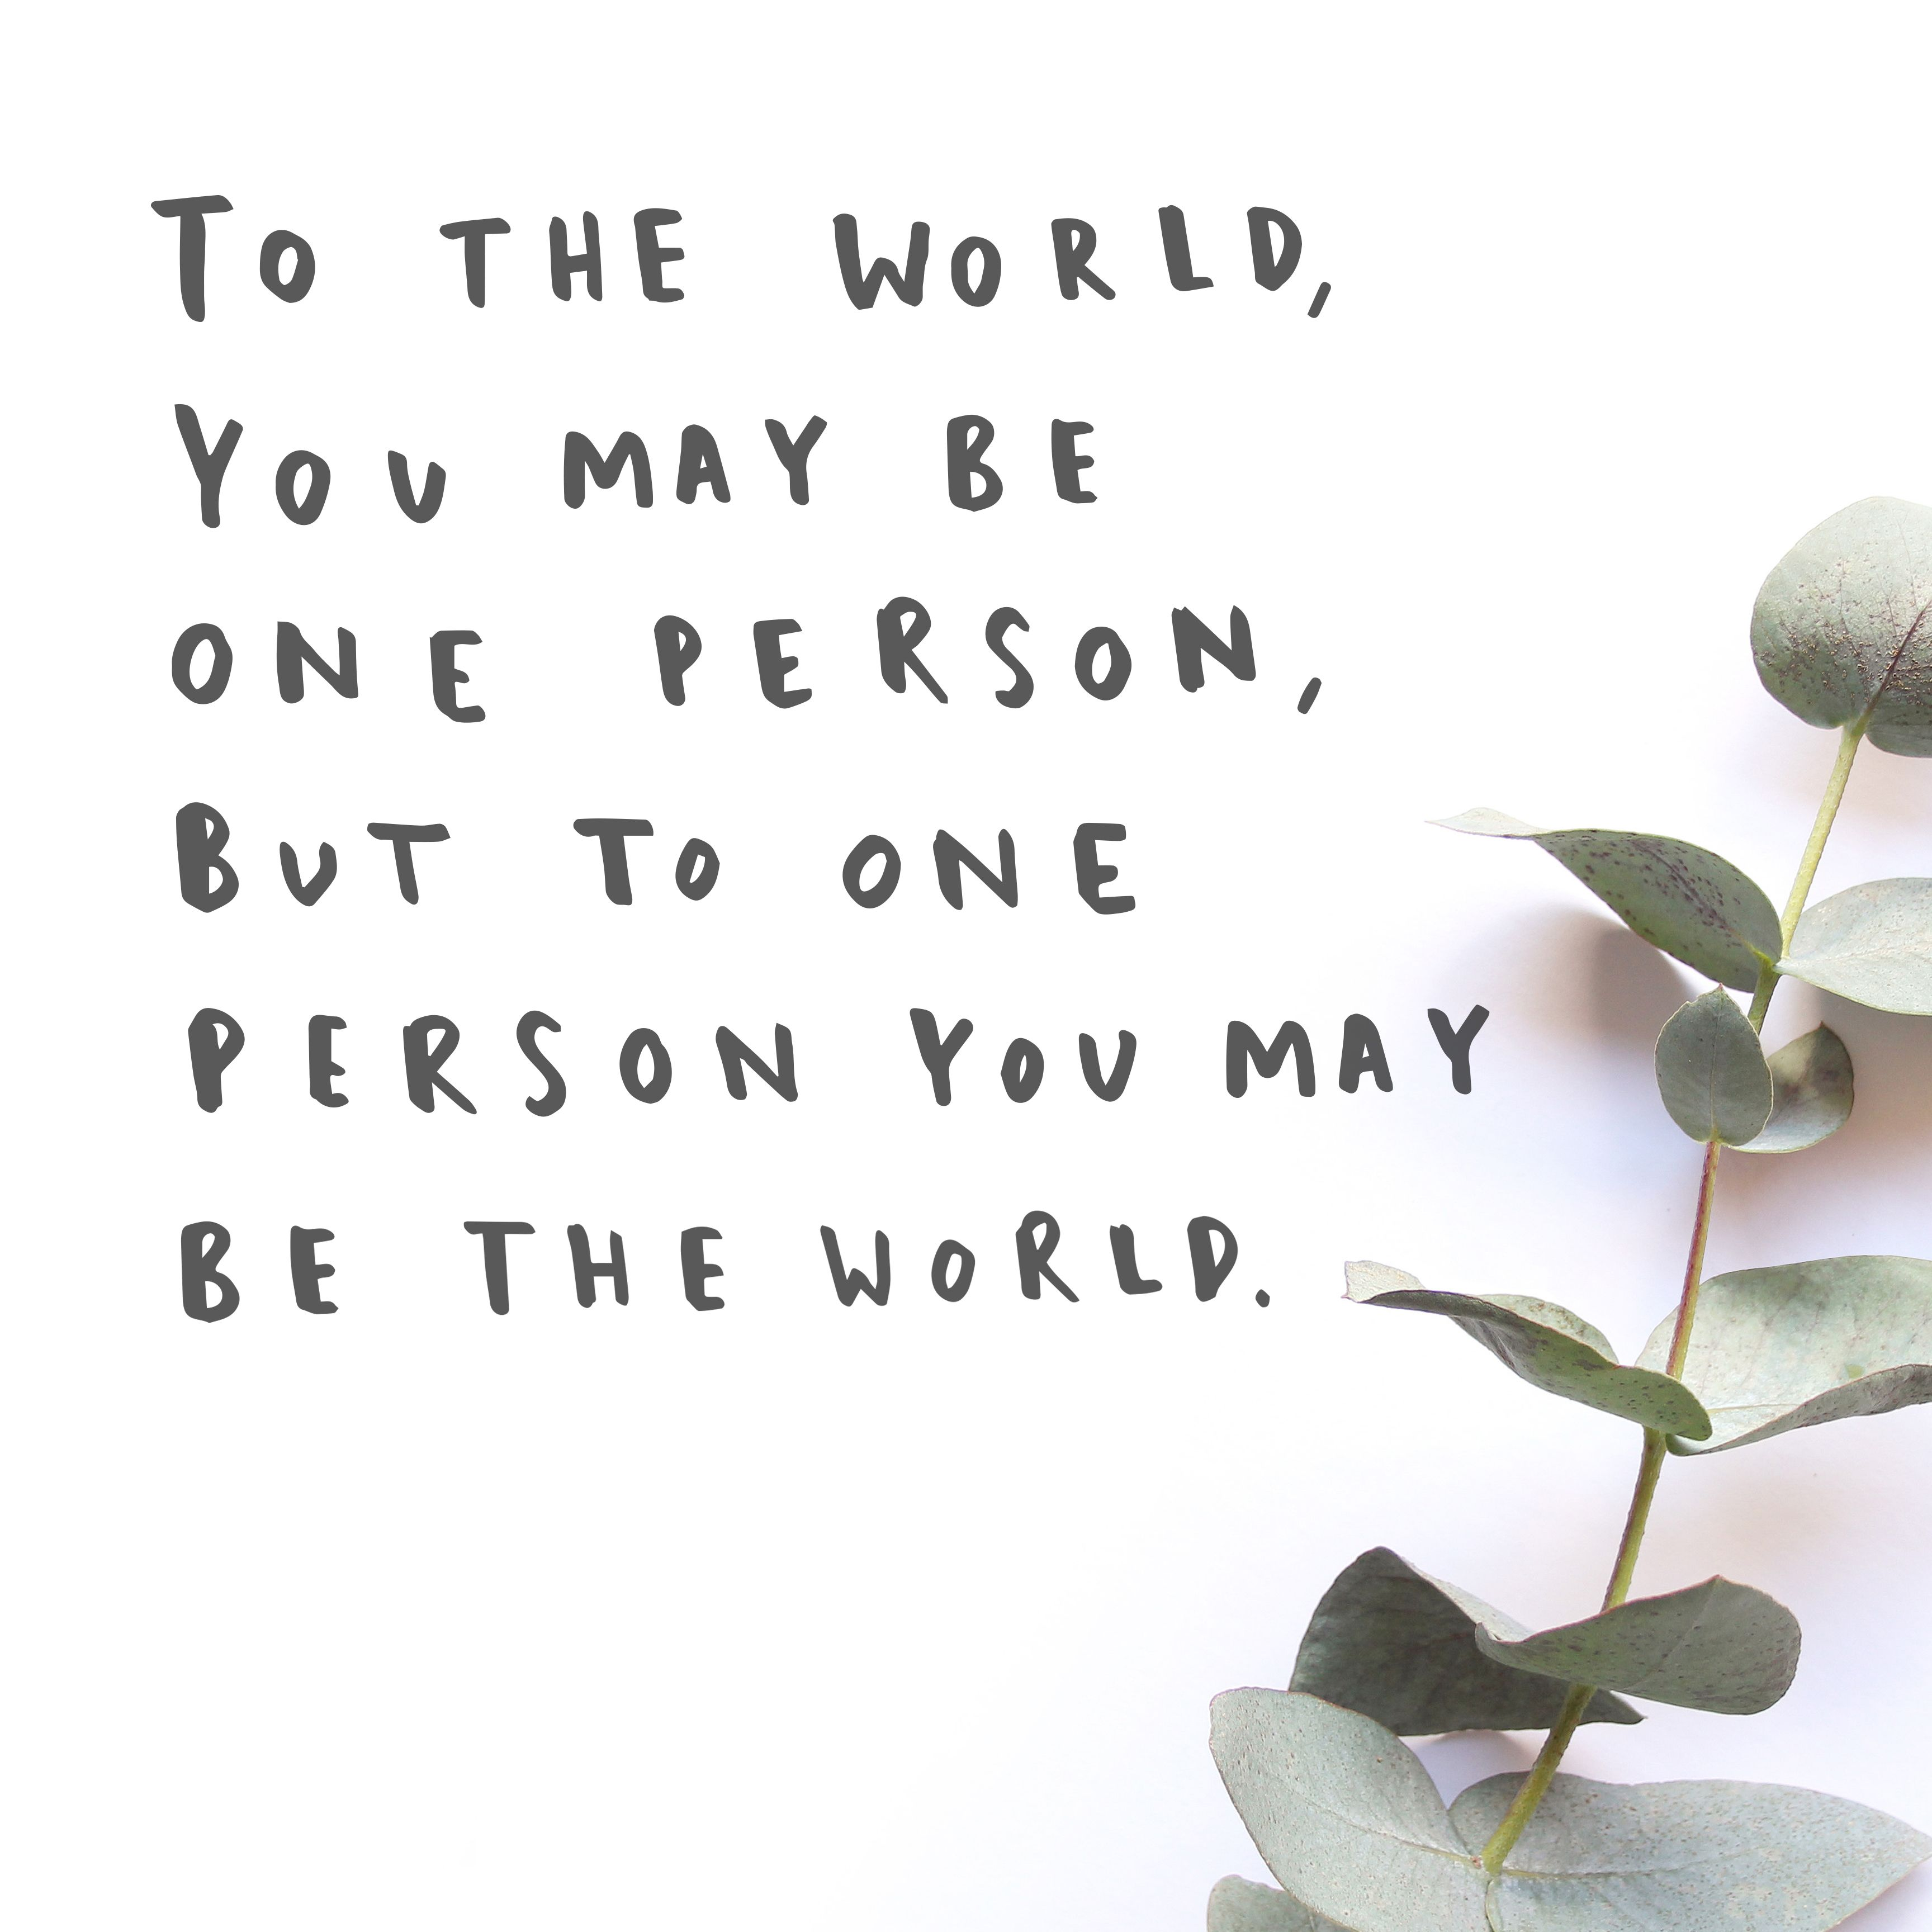 To The World You May Be One Person But To One Person You May Be